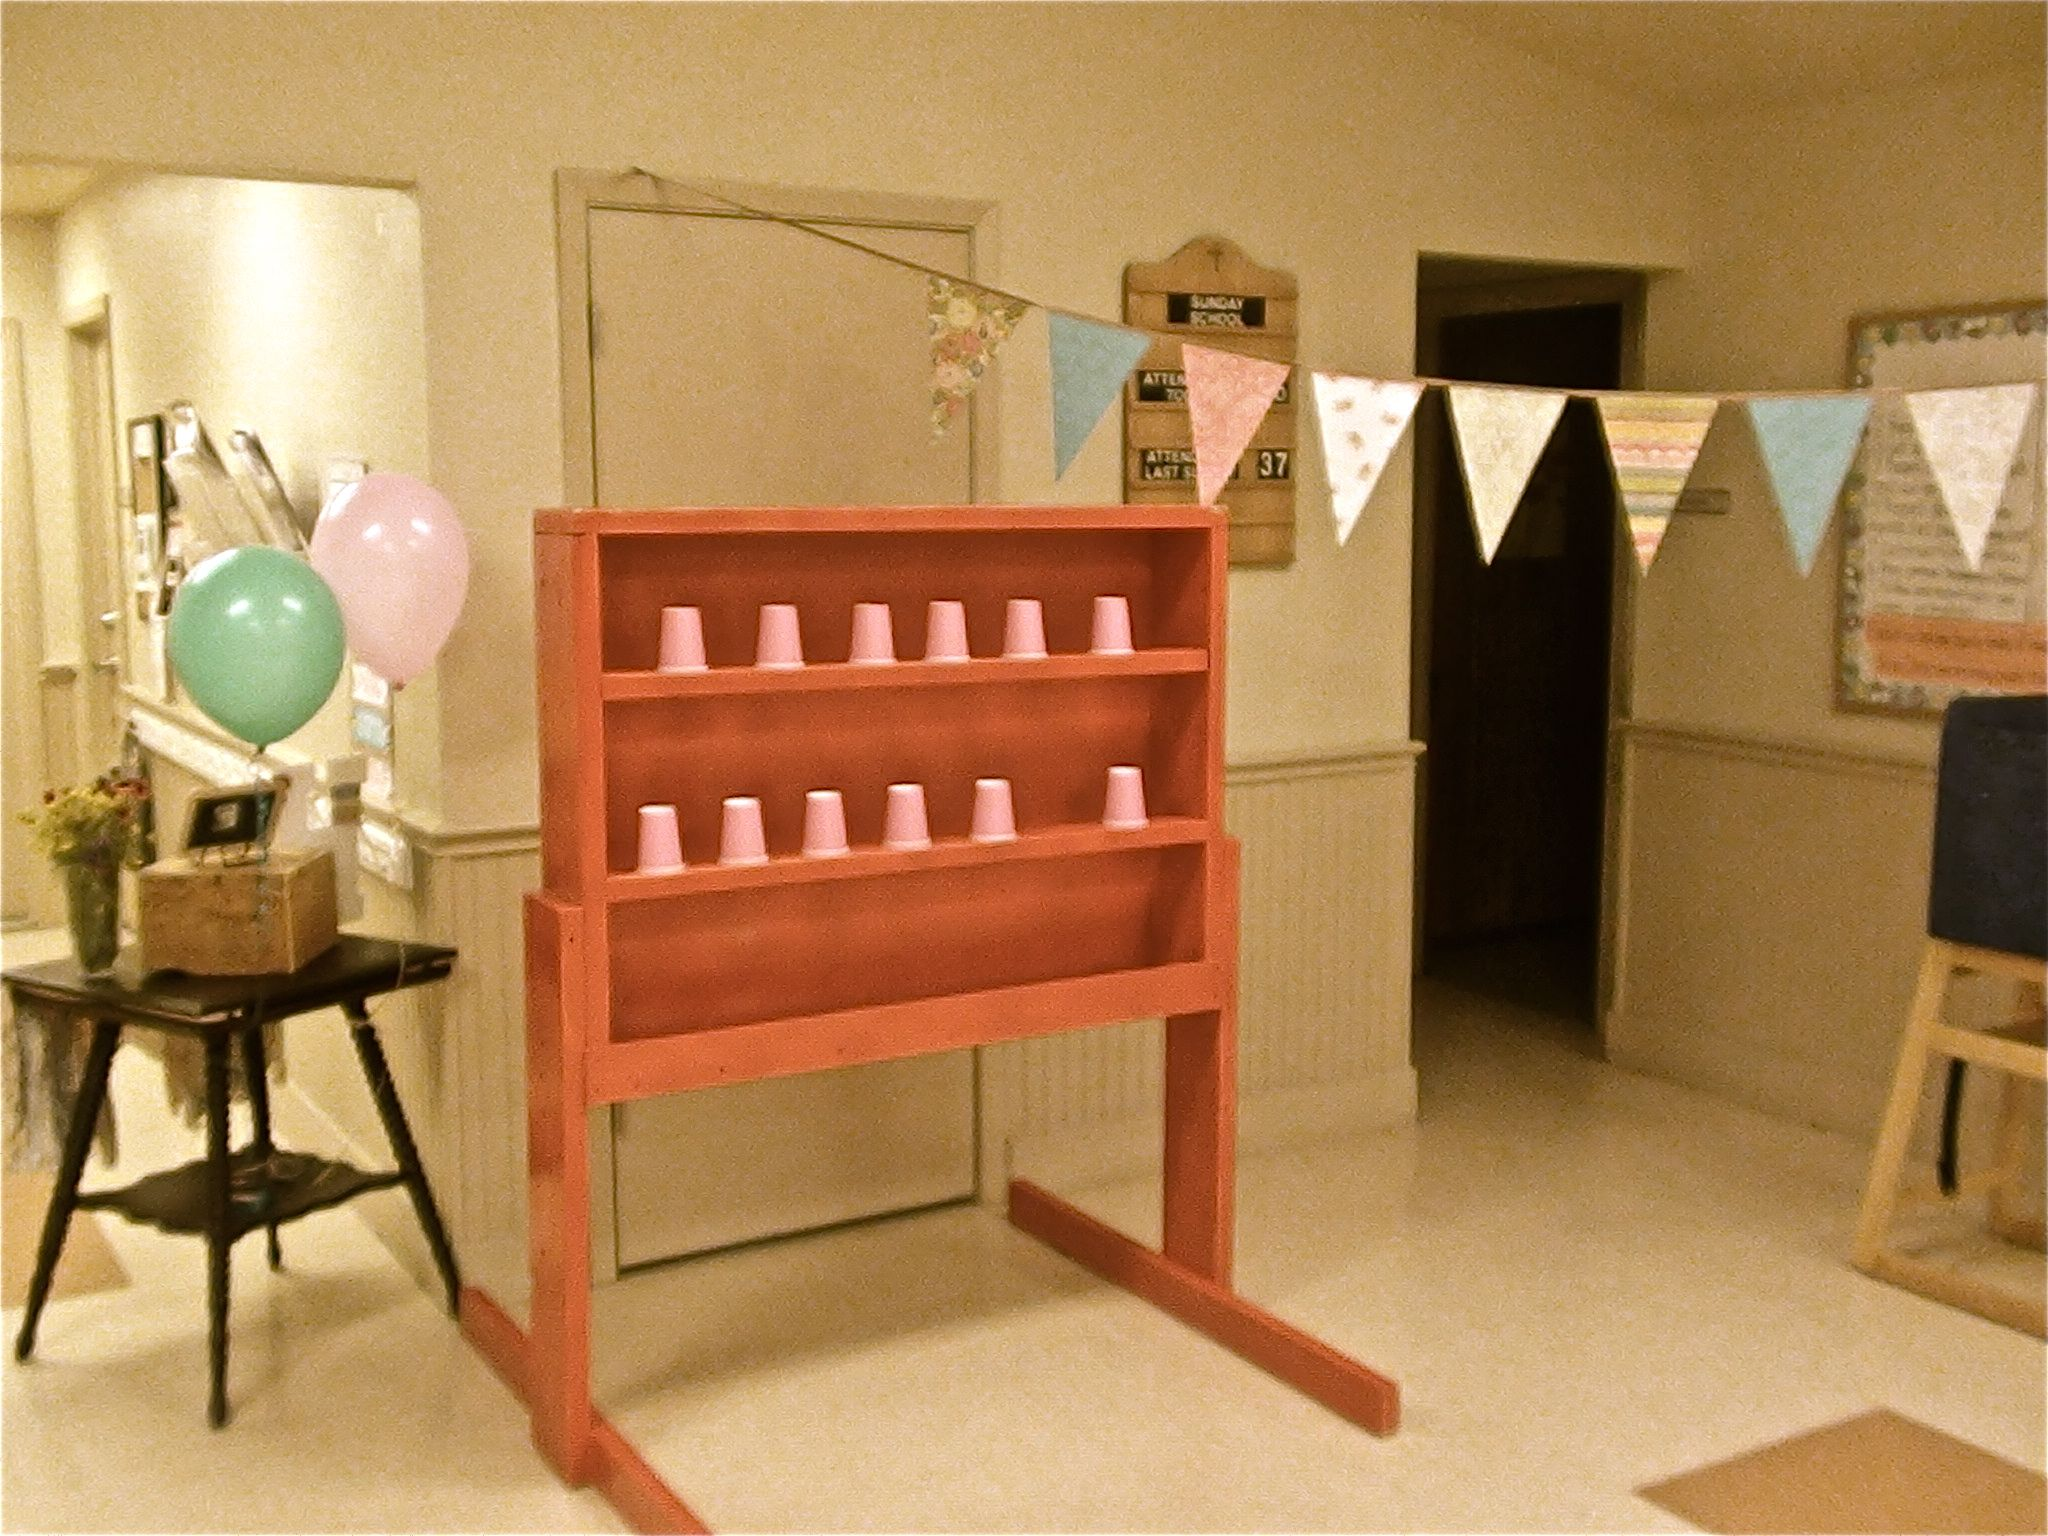 DIY Fair games for a Vintage County fair 1st birthday party. Use nerf guns to shoot cups off the shelf! (I wanted to use tin cans but they were too heavy for the nerf guns to knock off!)